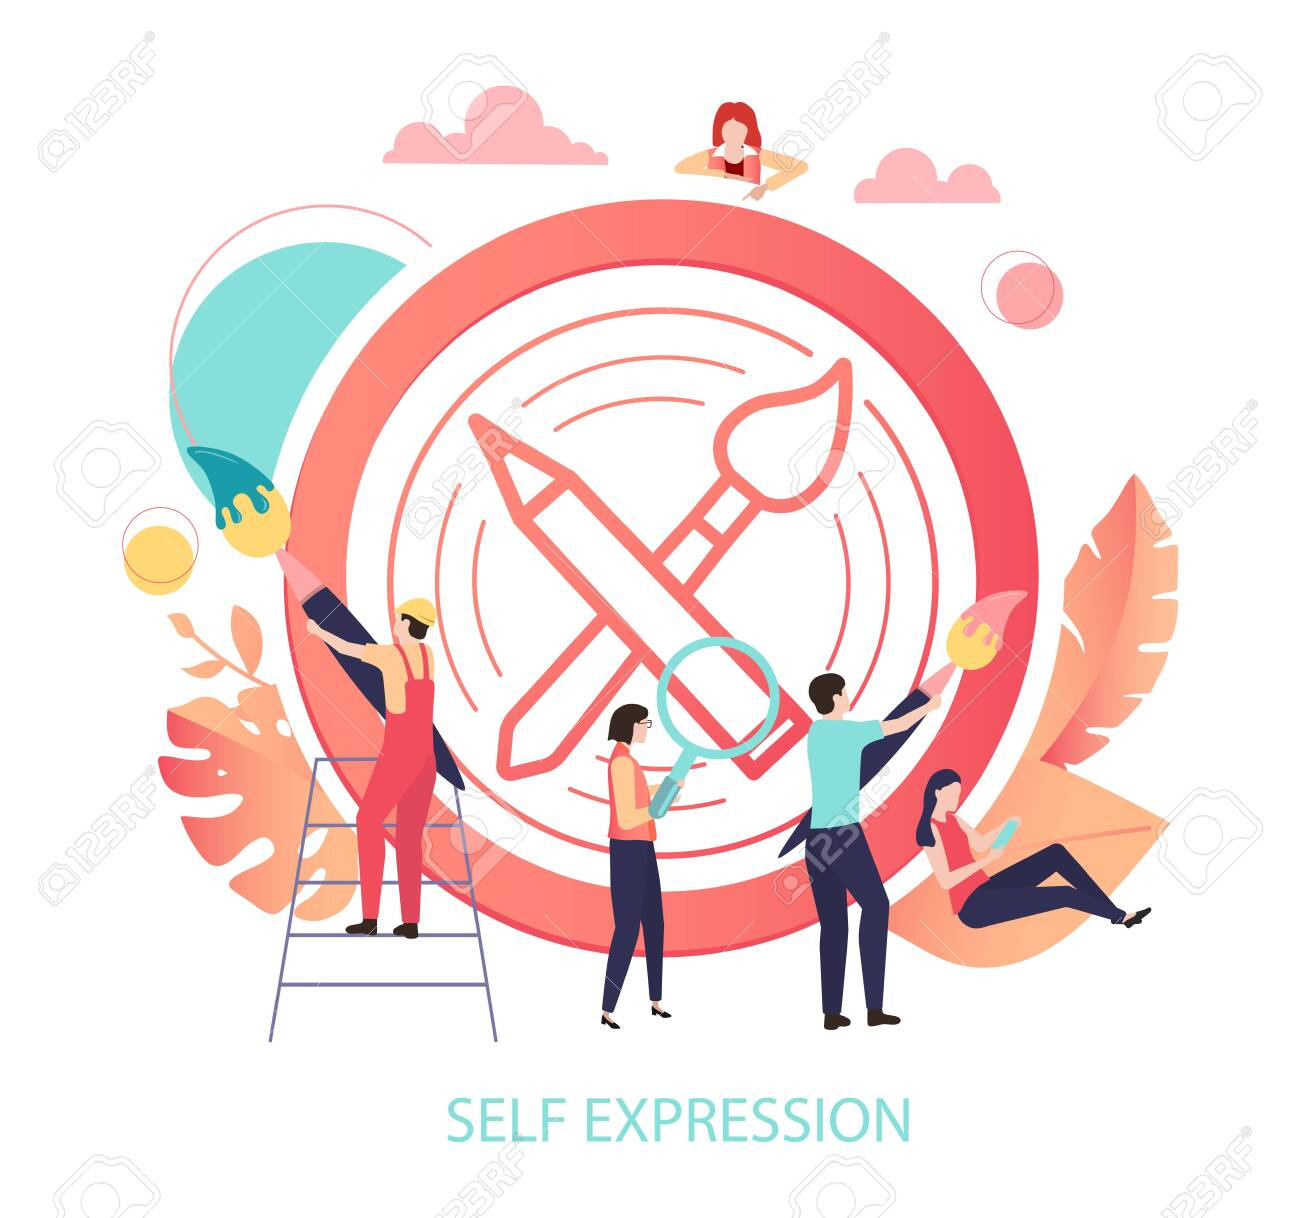 Self expression. Round sign or icon with paint brush and people. Inspiration, creation, art, craft, hobby, lifestyle. Vector illustration in trendy living coral color, flat style. - 124490264